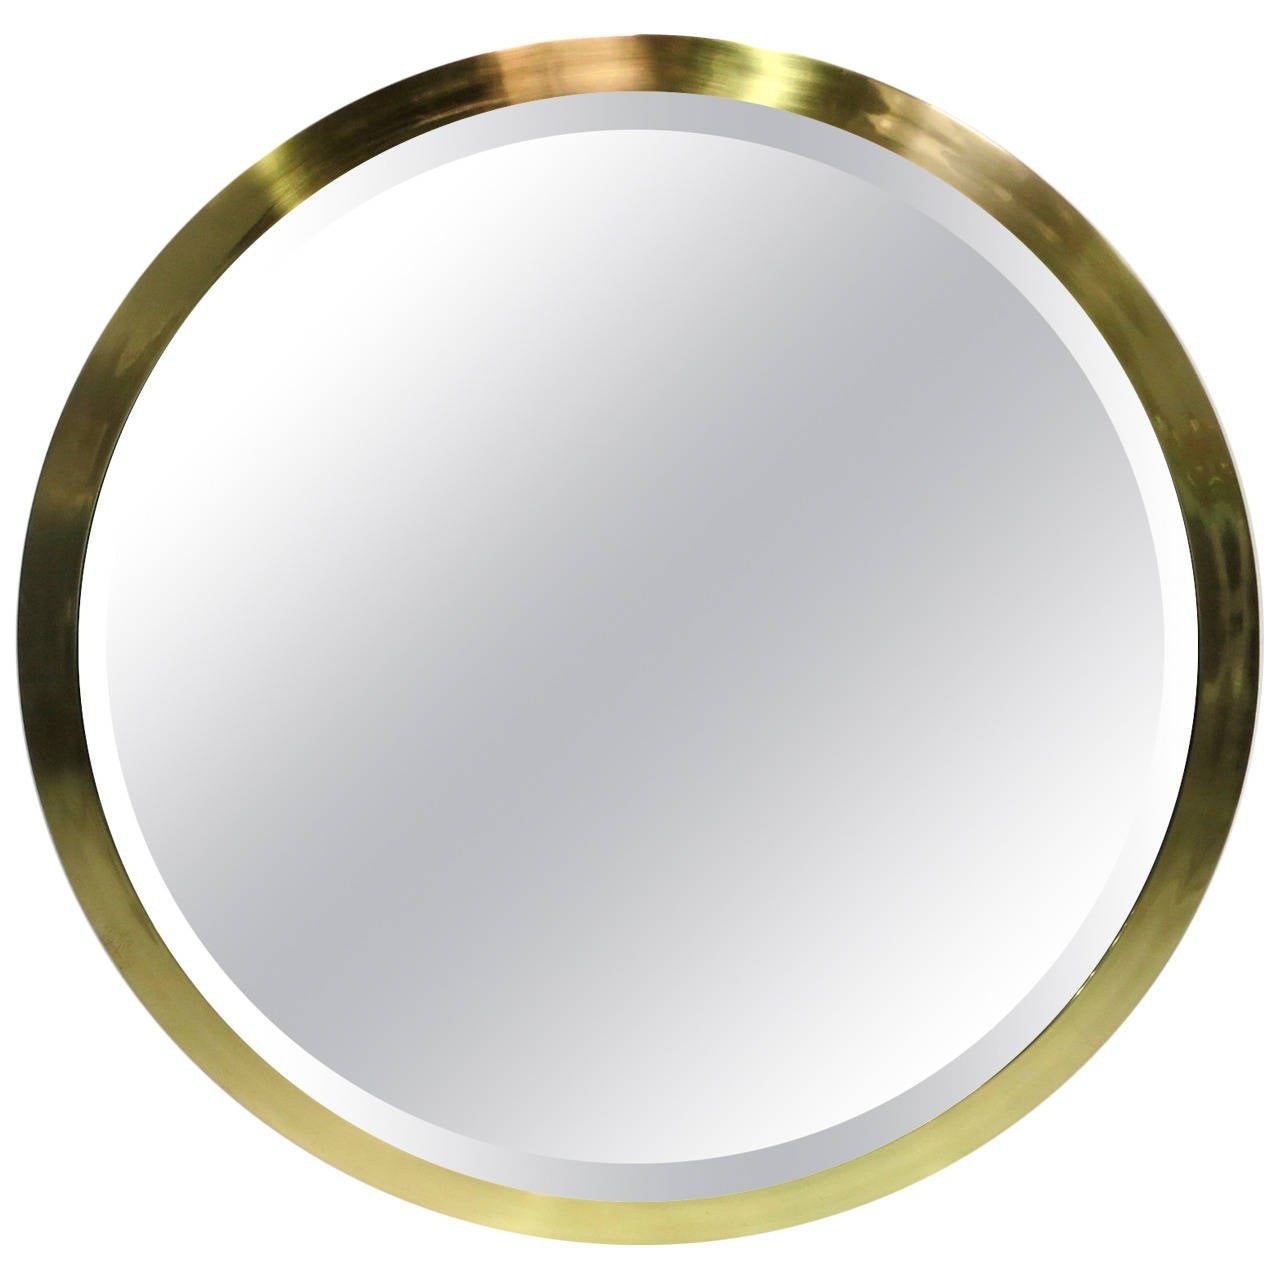 Large scale round beveled mirror with brass frame at 1stdibs for Round mirror